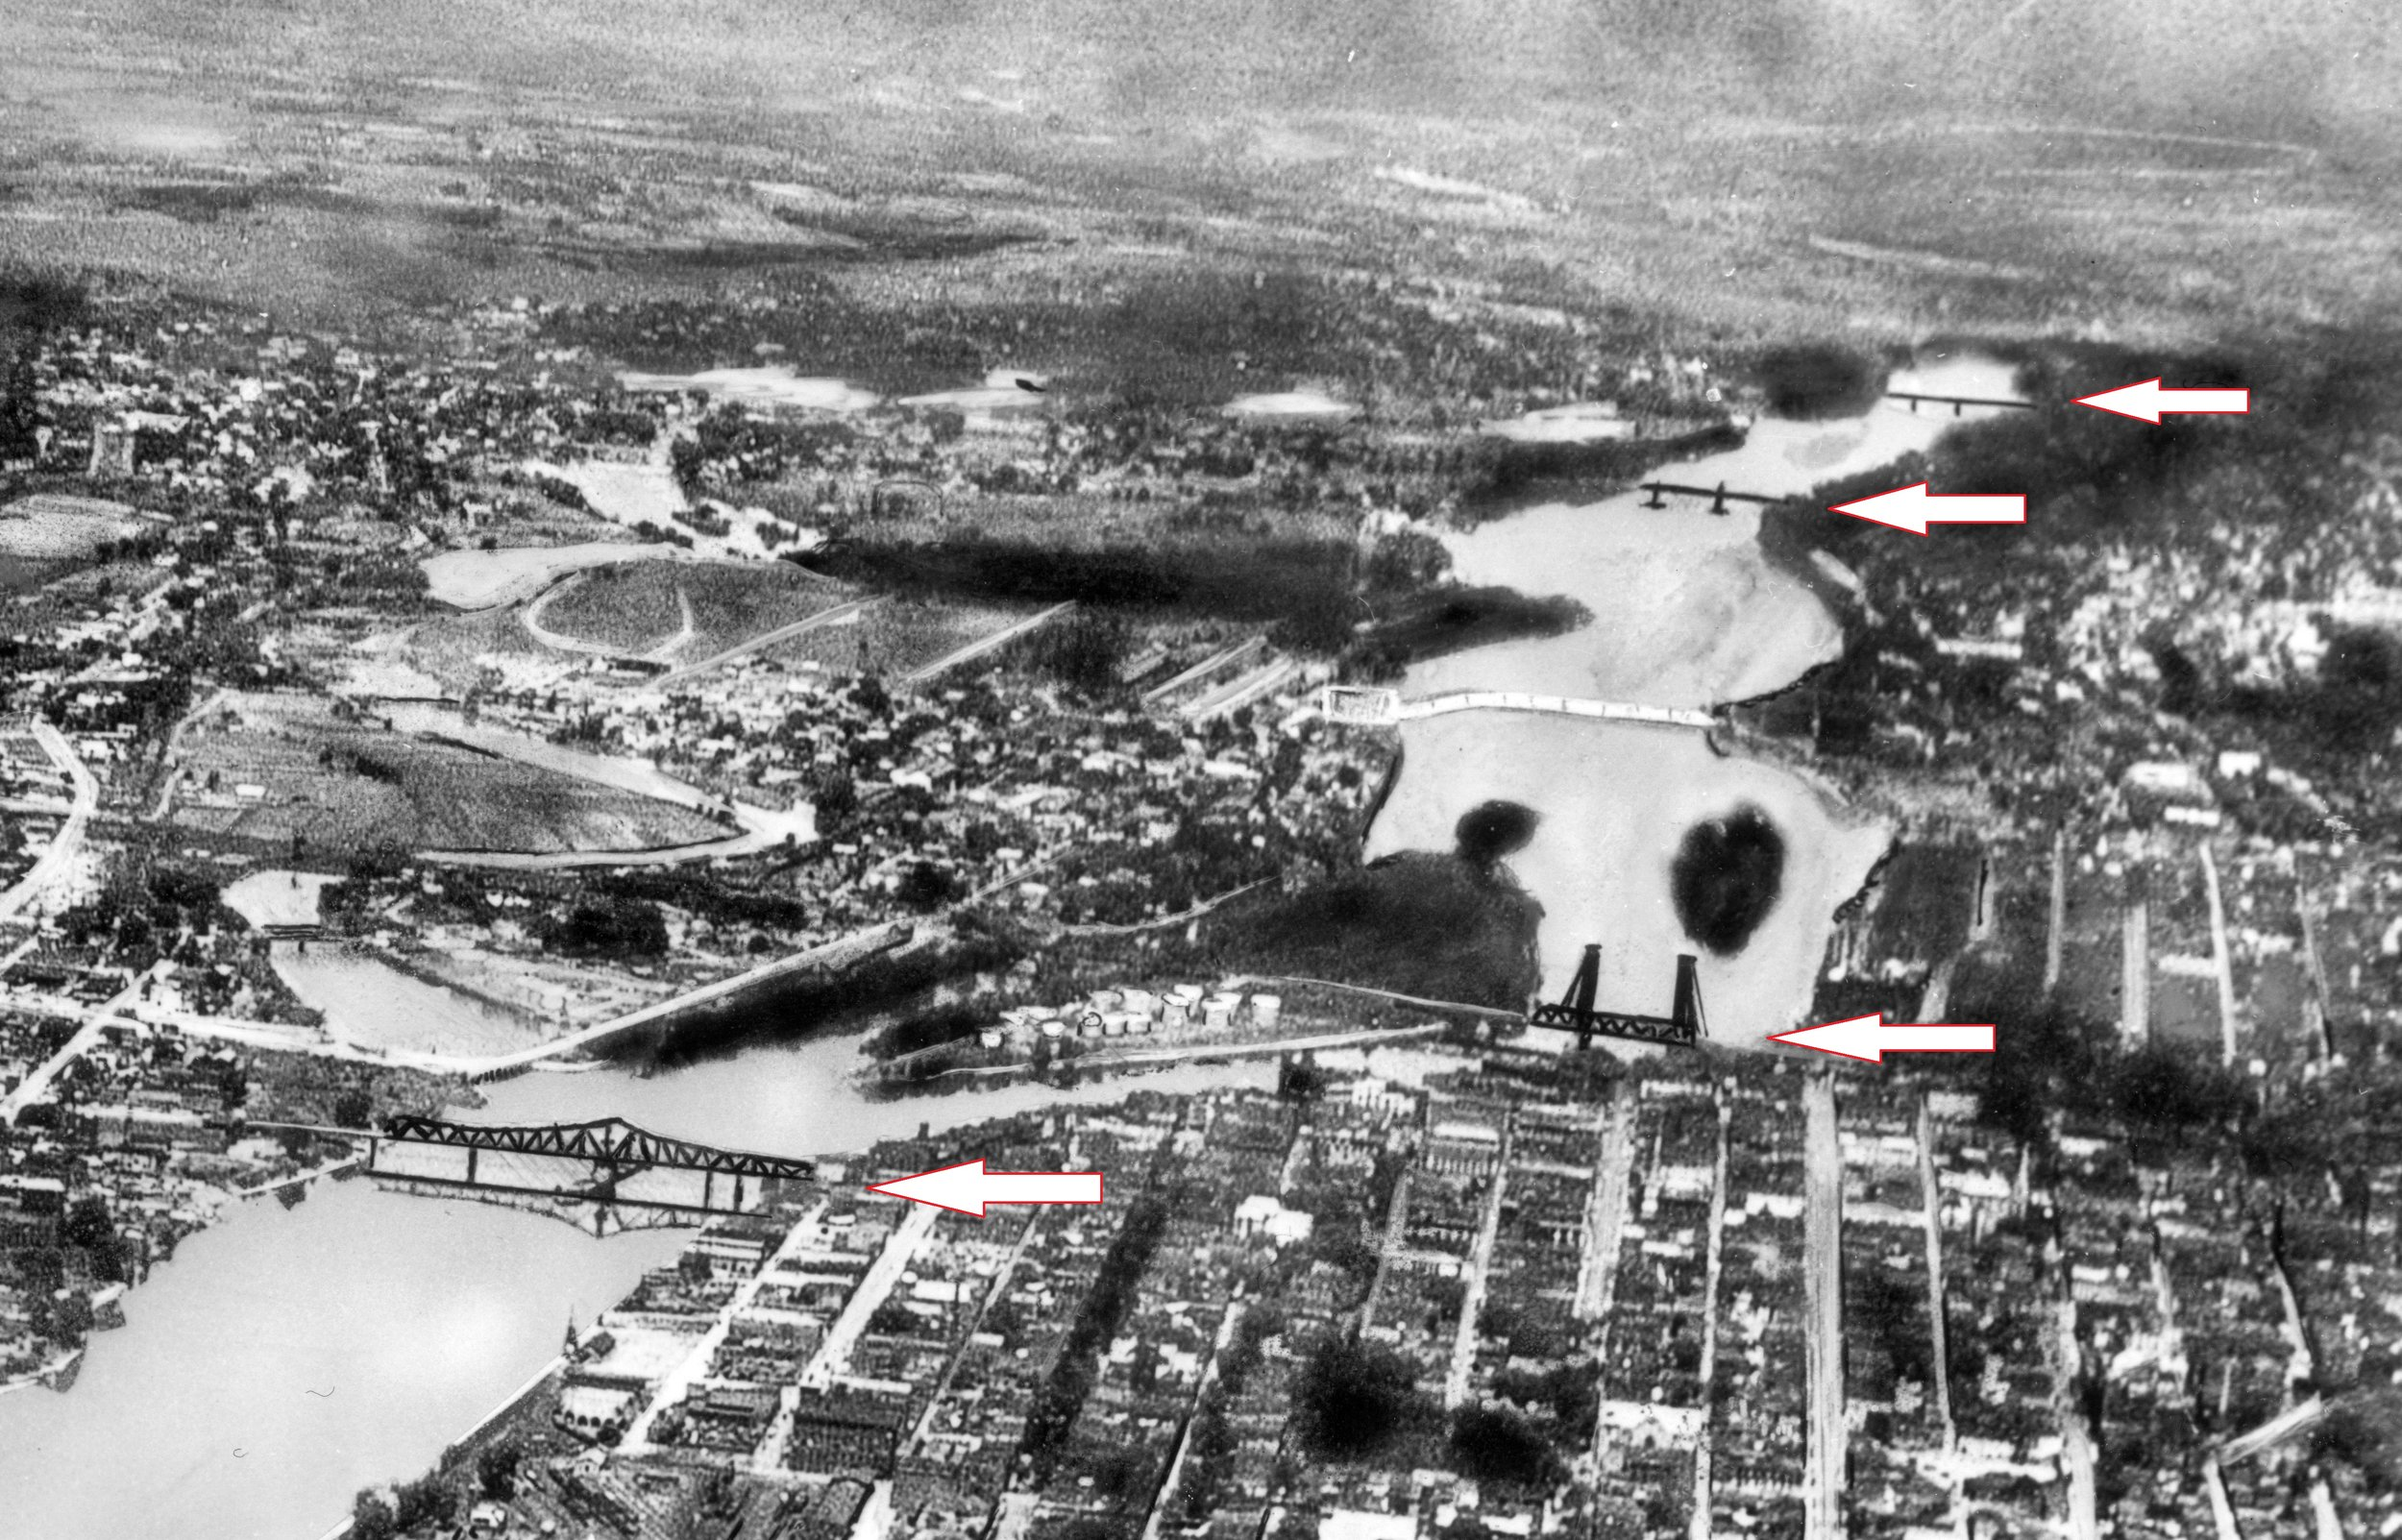 This aerial view of the Hudson Valley looking north dates from about 1930 and shows four of the bridges that cross the river within Troy's city limits. Do you know which ones are not there yet? Top to bottom – Waterford/Troy (Lansingburgh; 112th Street (Troy/Cohoes); Green Island/Troy; and Congress Street bridge. All of the bridges shown have either been replaced with newer bridges or had a lot of work done on them in recent years.